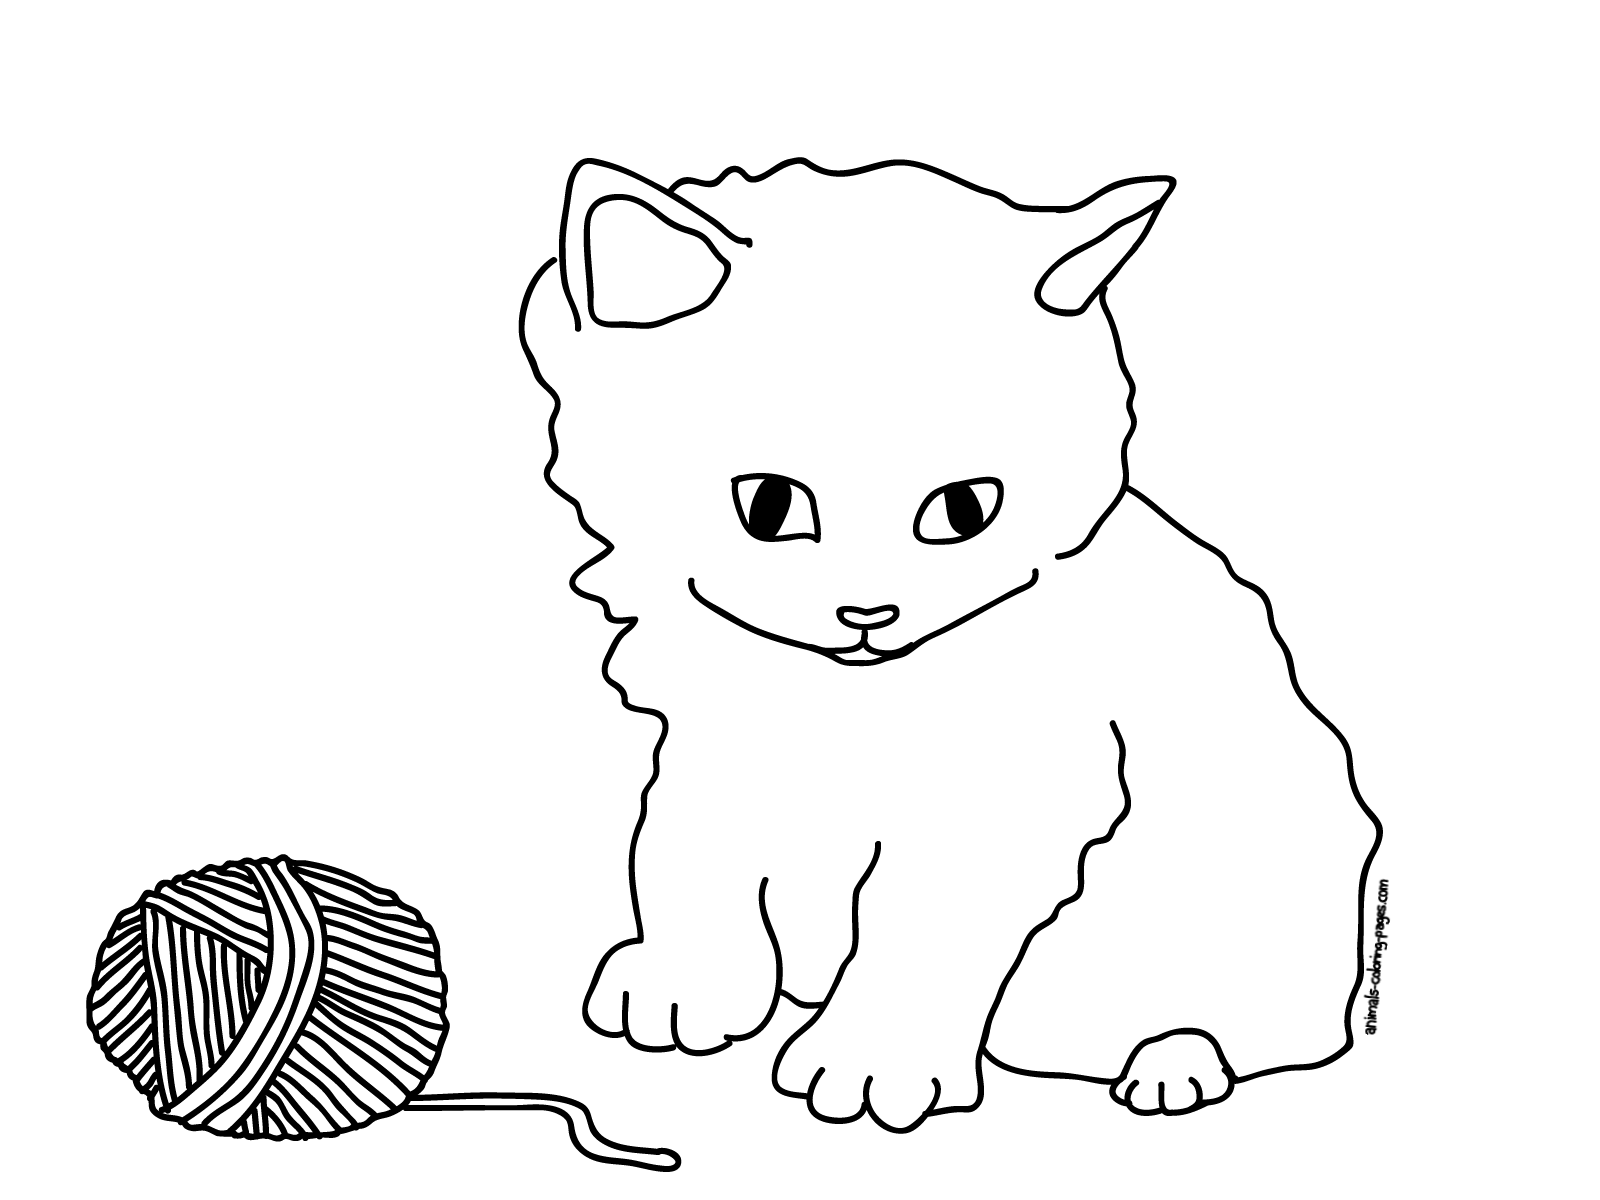 kitten color pages free printable cat coloring pages for kids kitten color pages 1 1